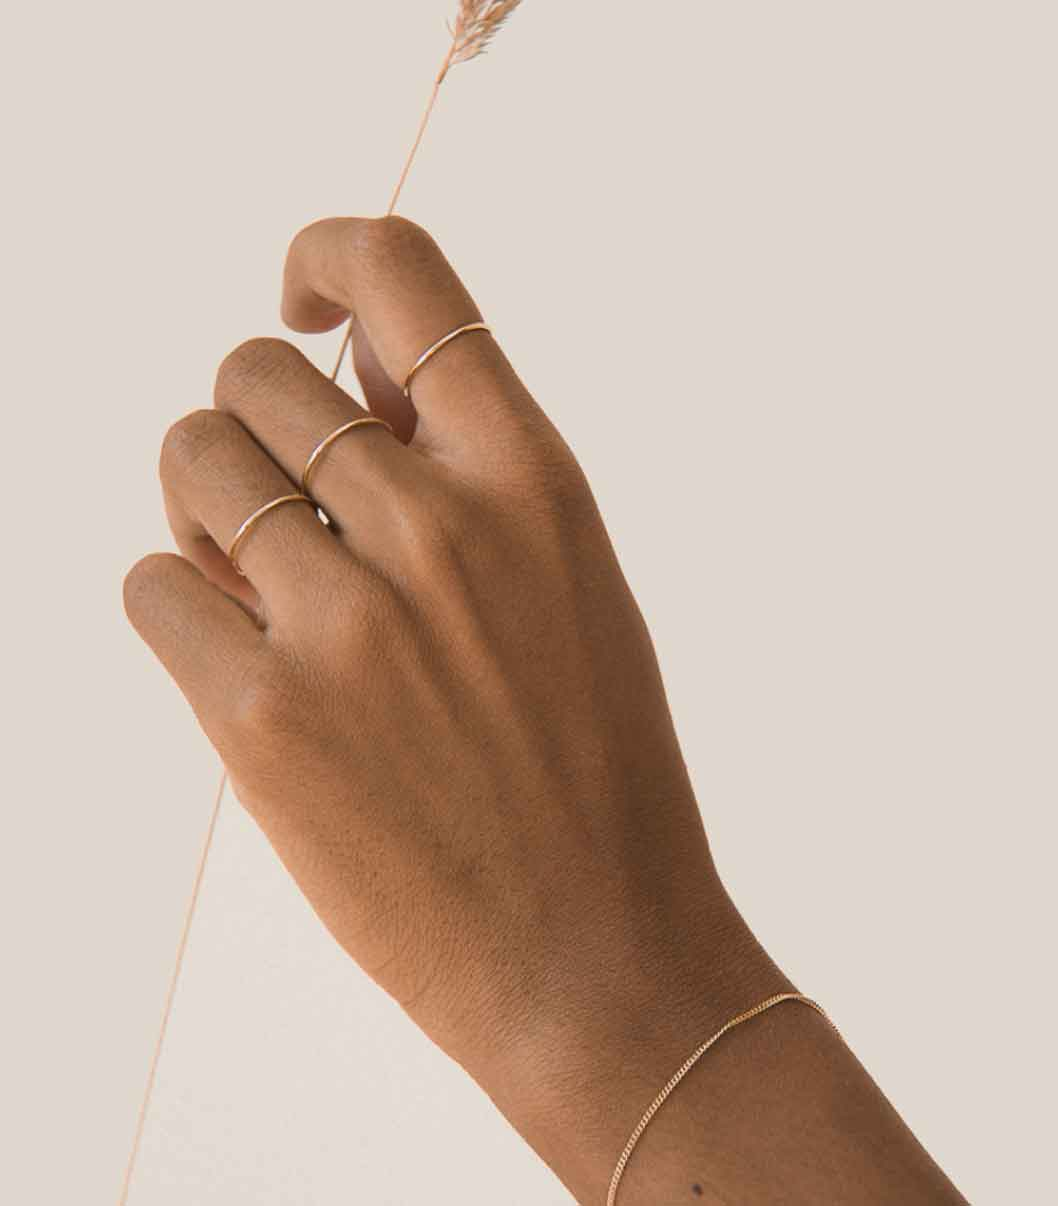 NORRFOLK SWEDEN BRANDS JEWELLERY ethical and sustainable good fashion guide ECOLOOKBOOK